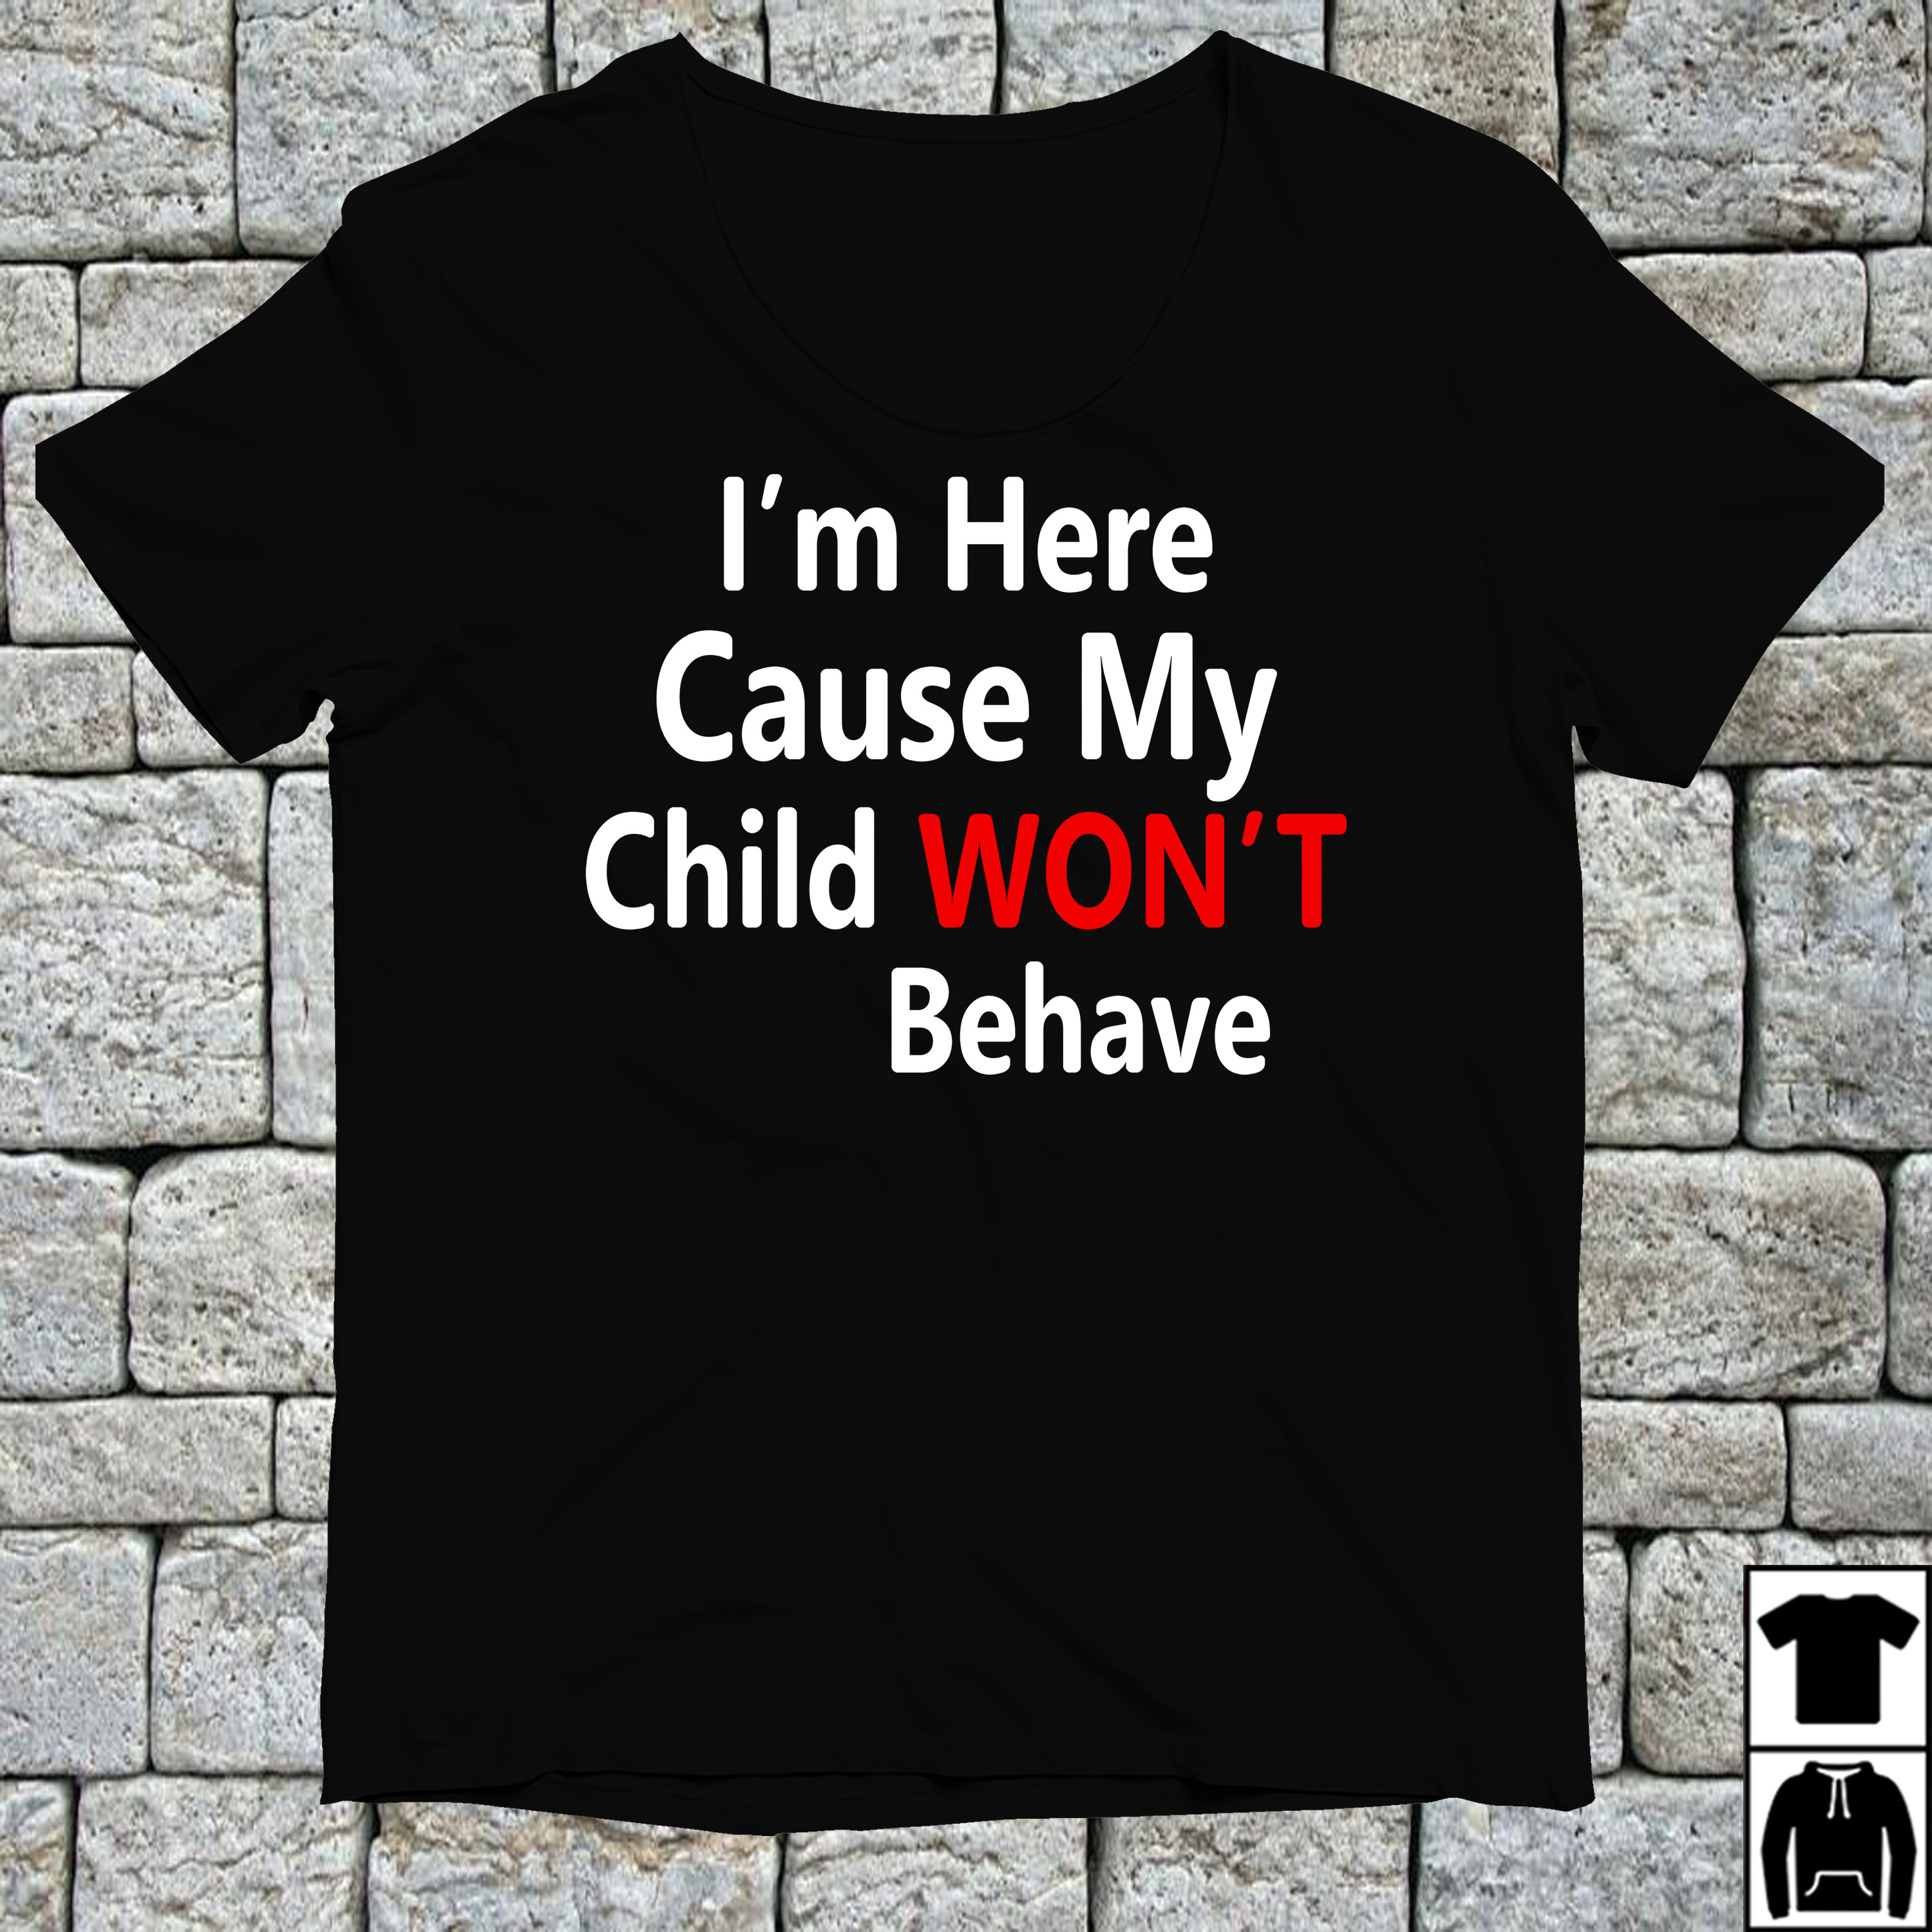 I'm here cause my child won't behave shirt